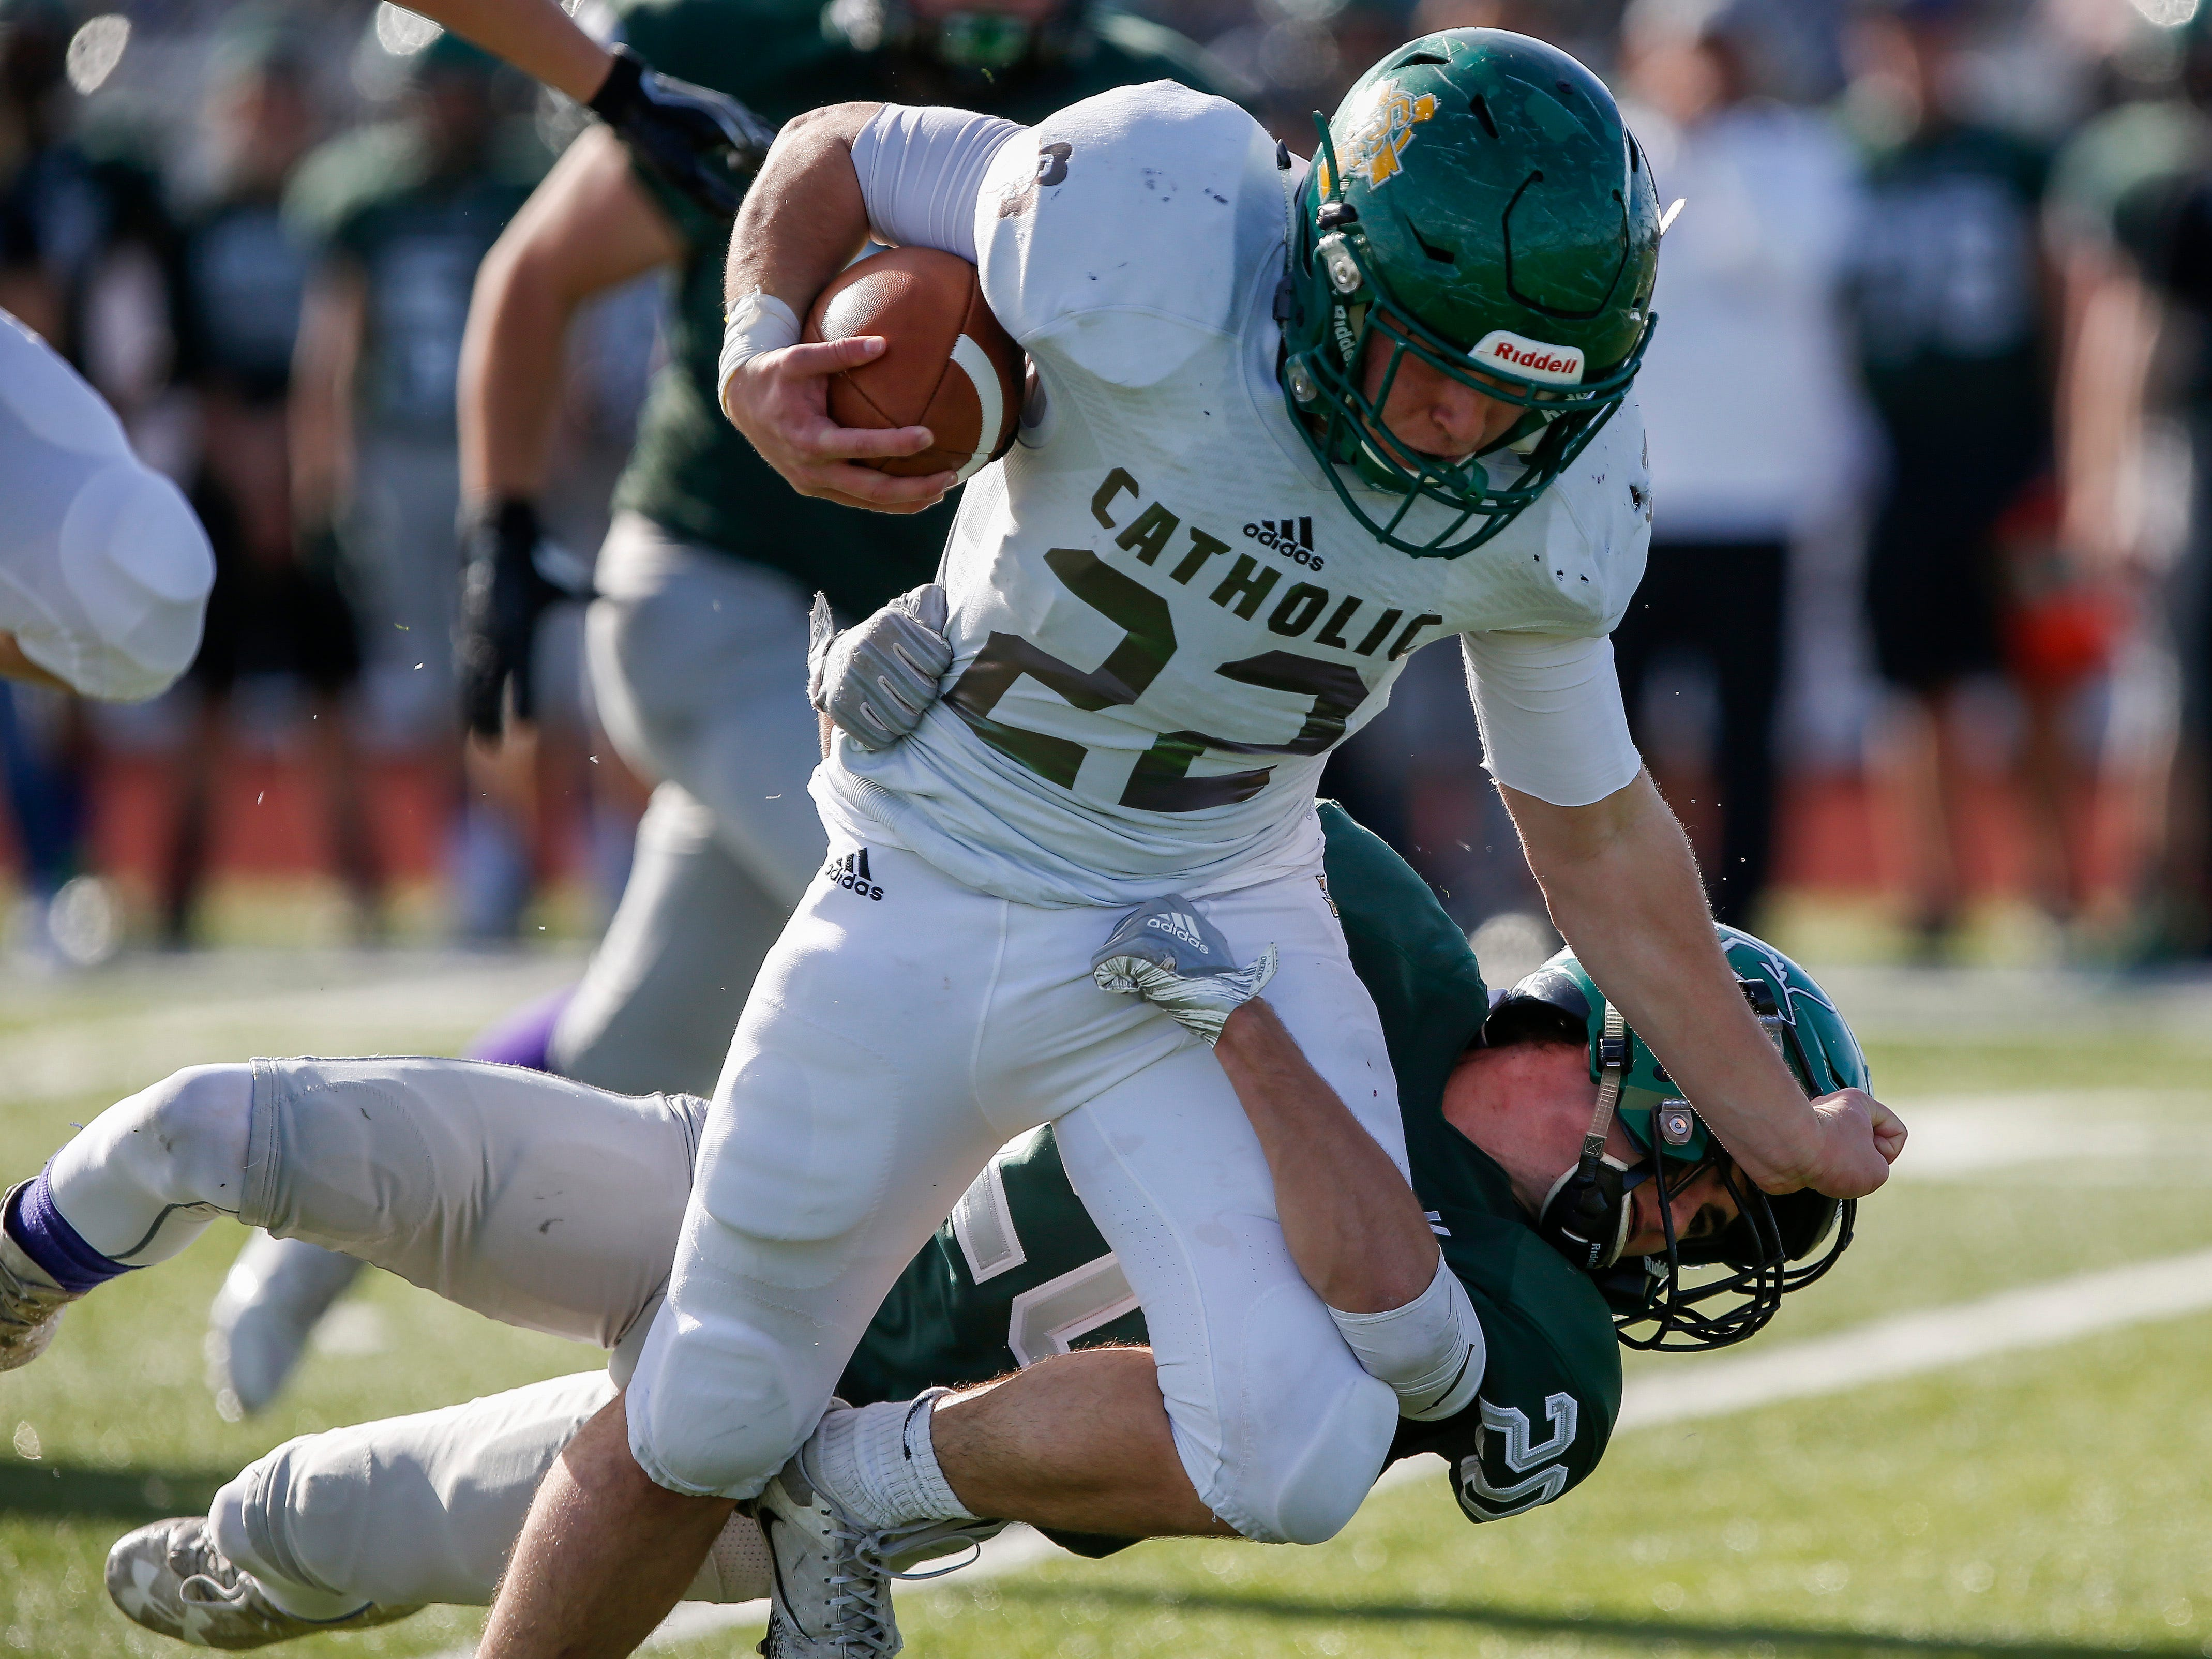 Nick Crites, of Springfield Catholic, stiff arms a Mount Vernon defender in the Irish's 26-18 loss in the Class 3 Quarterfinal game at Mount Vernon High School on Saturday, Nov. 17, 2018.